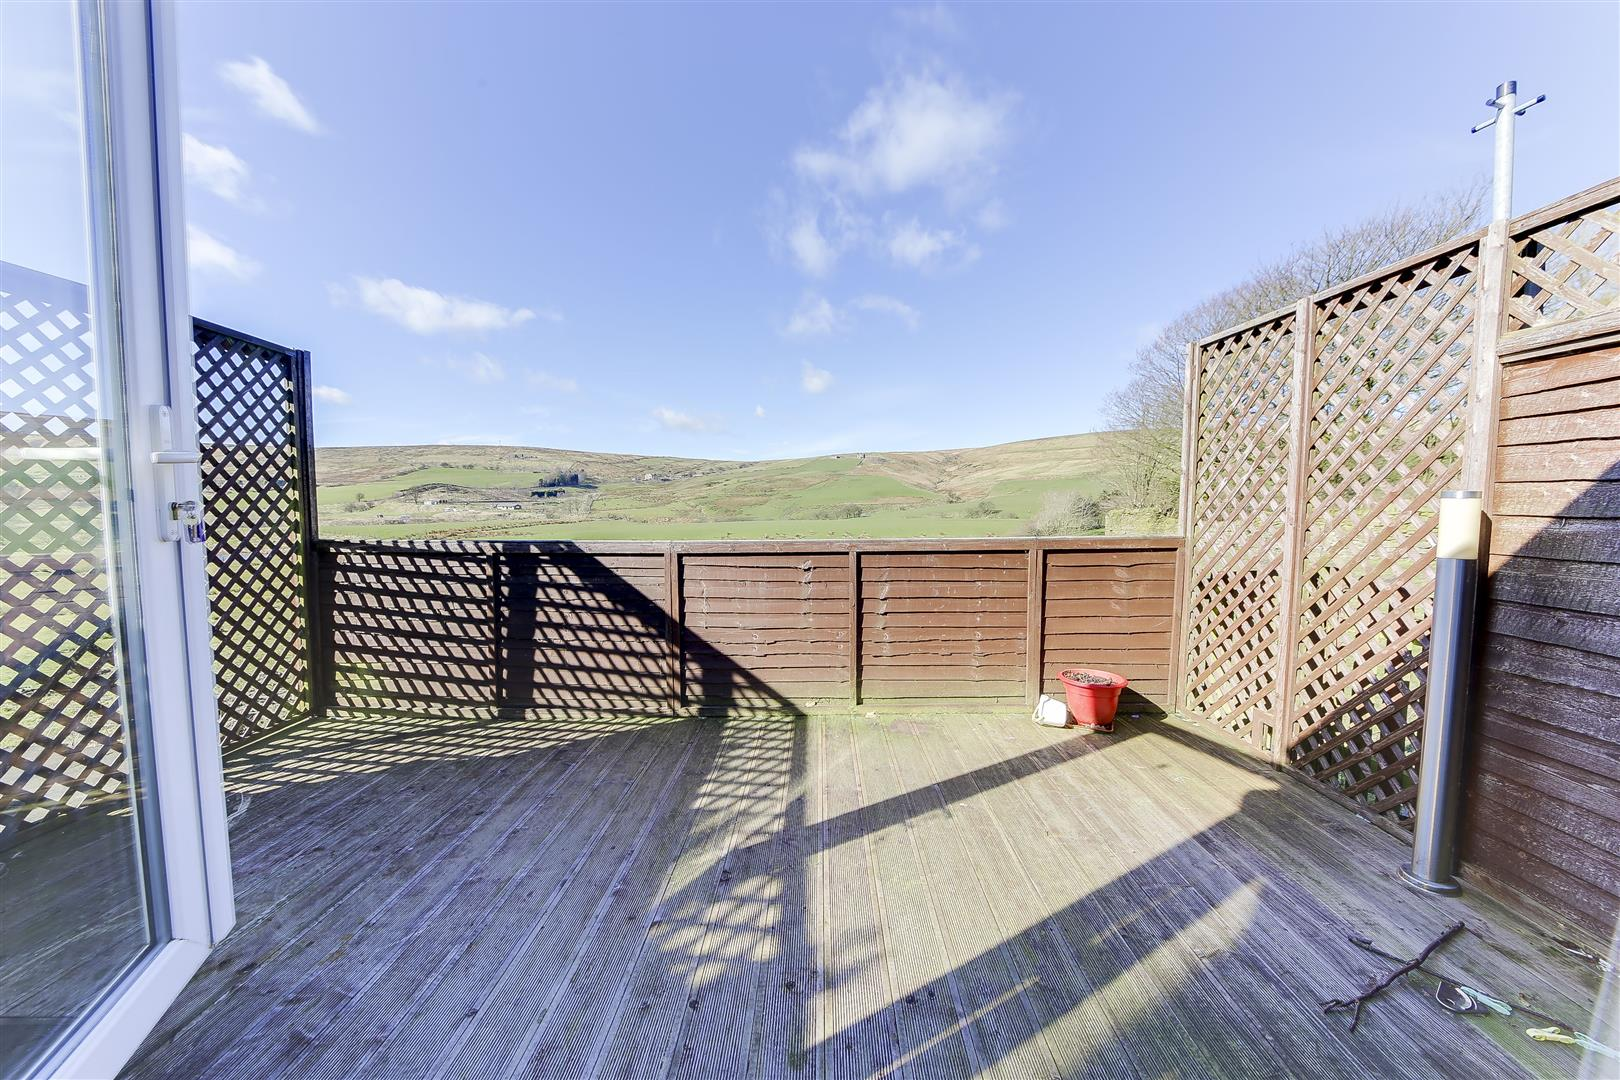 2 Bedrooms Terraced House for rent in Burnley Road, Loveclough, Rossendale